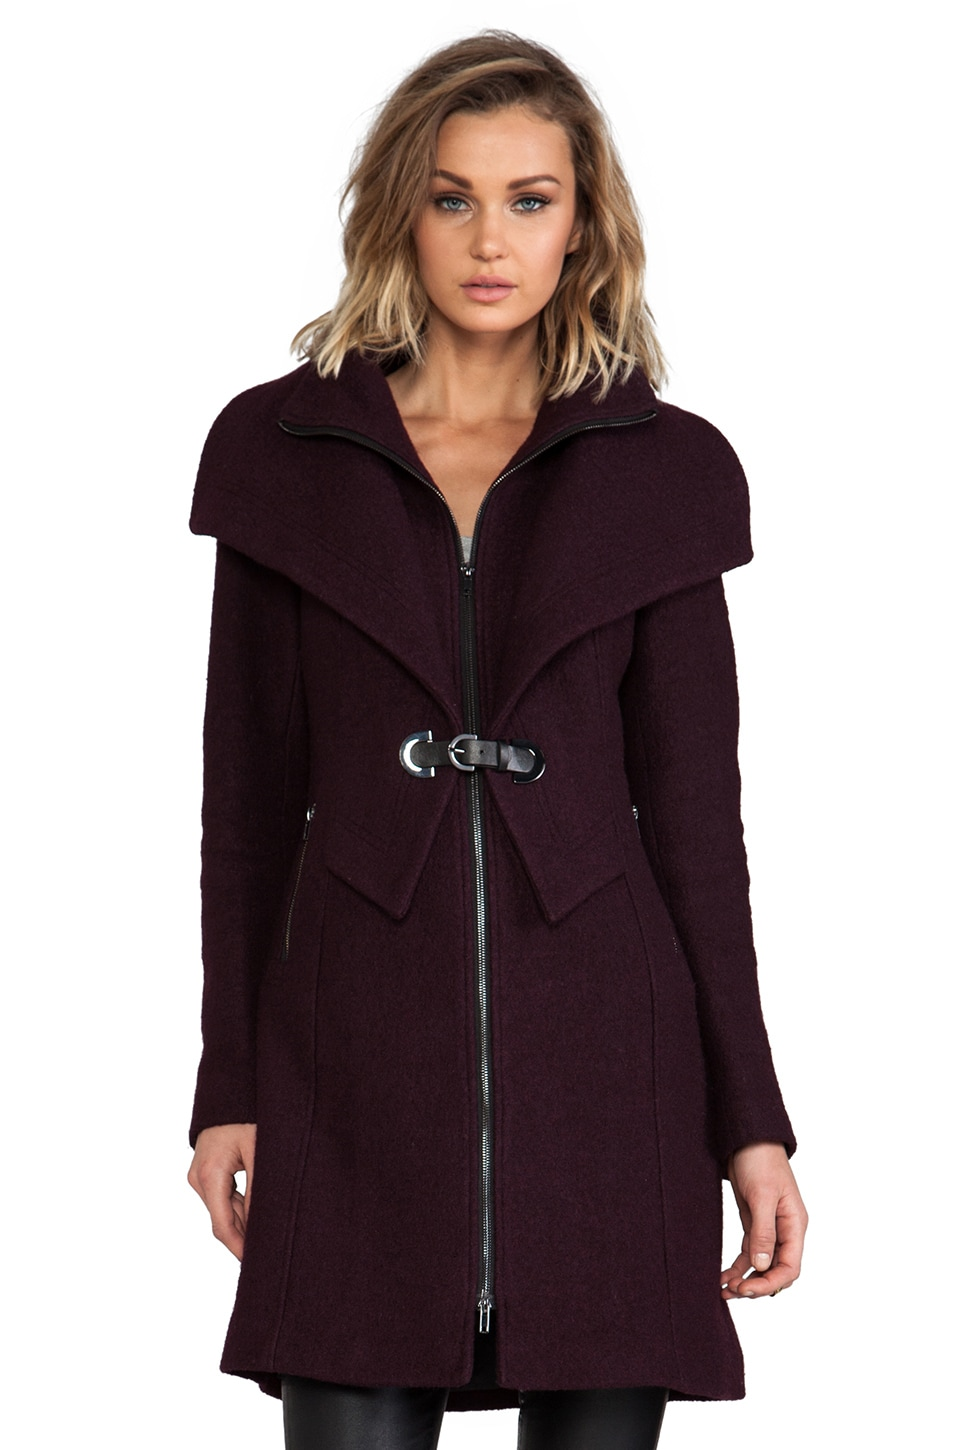 Soia & Kyo Fiala Wool Coat in Wine